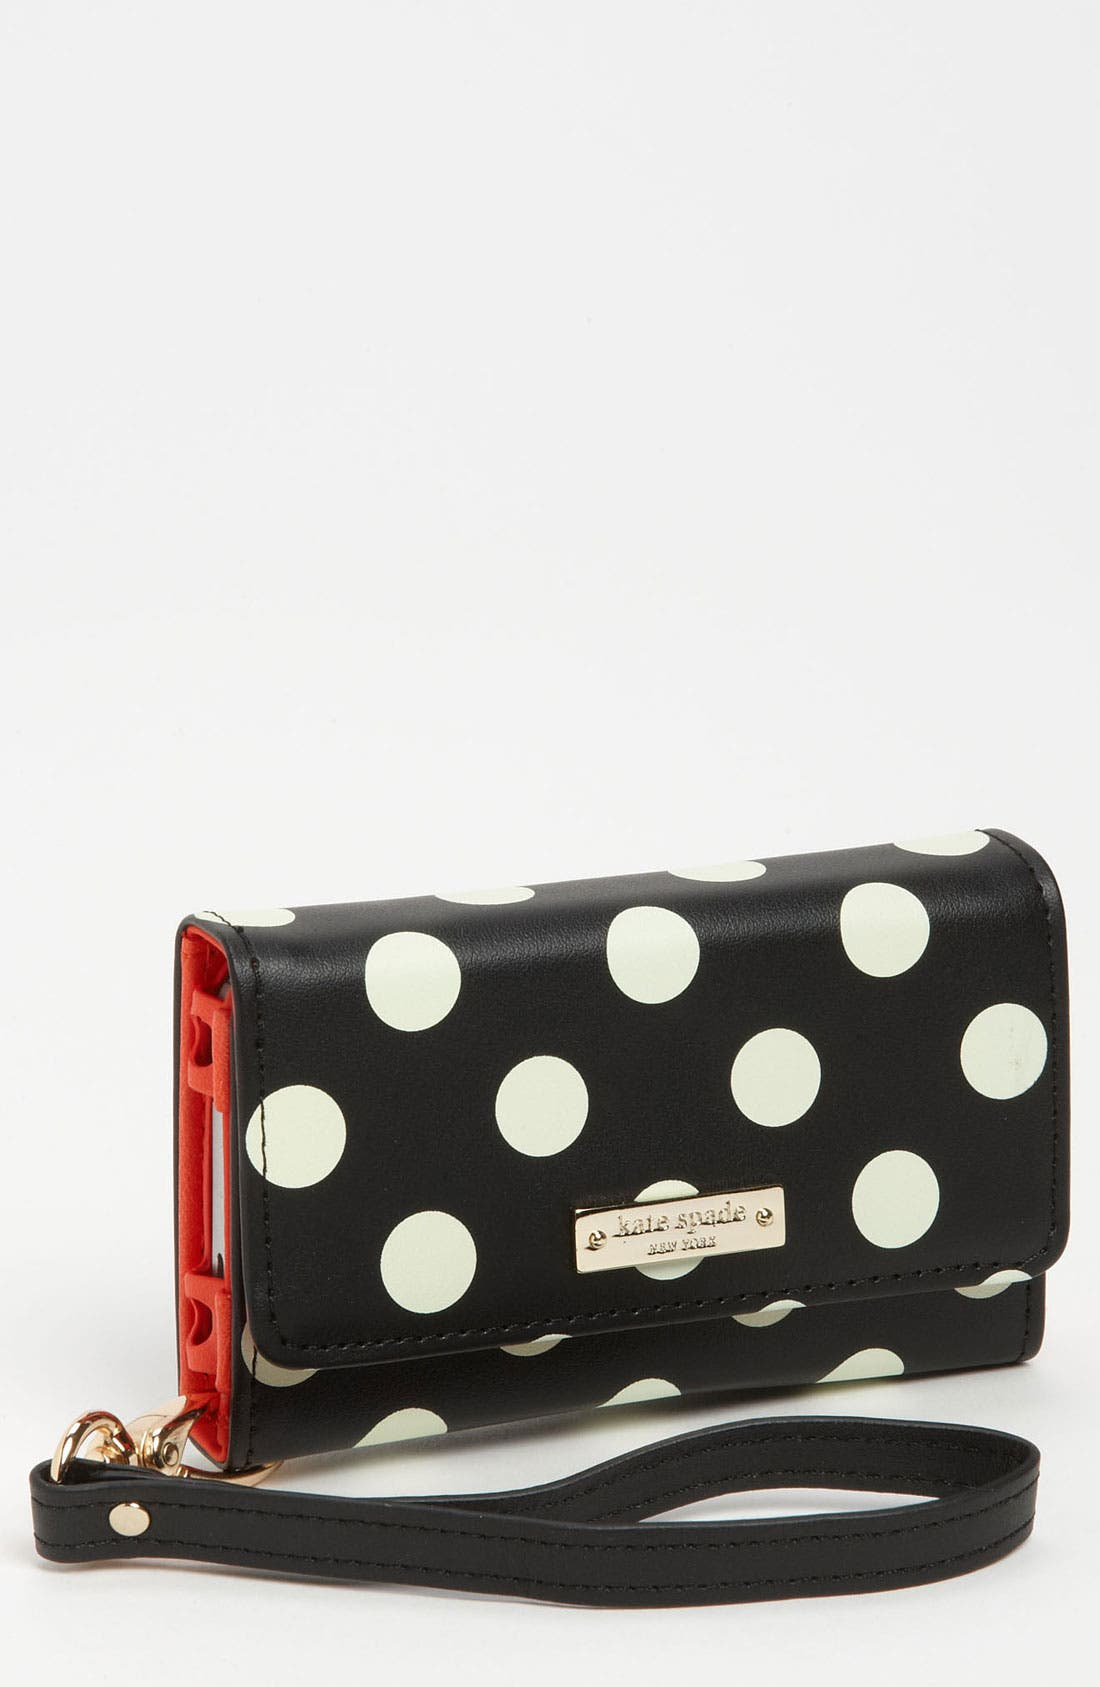 Alternate Image 1 Selected - kate spade new york 'la pavillion' iPhone wristlet